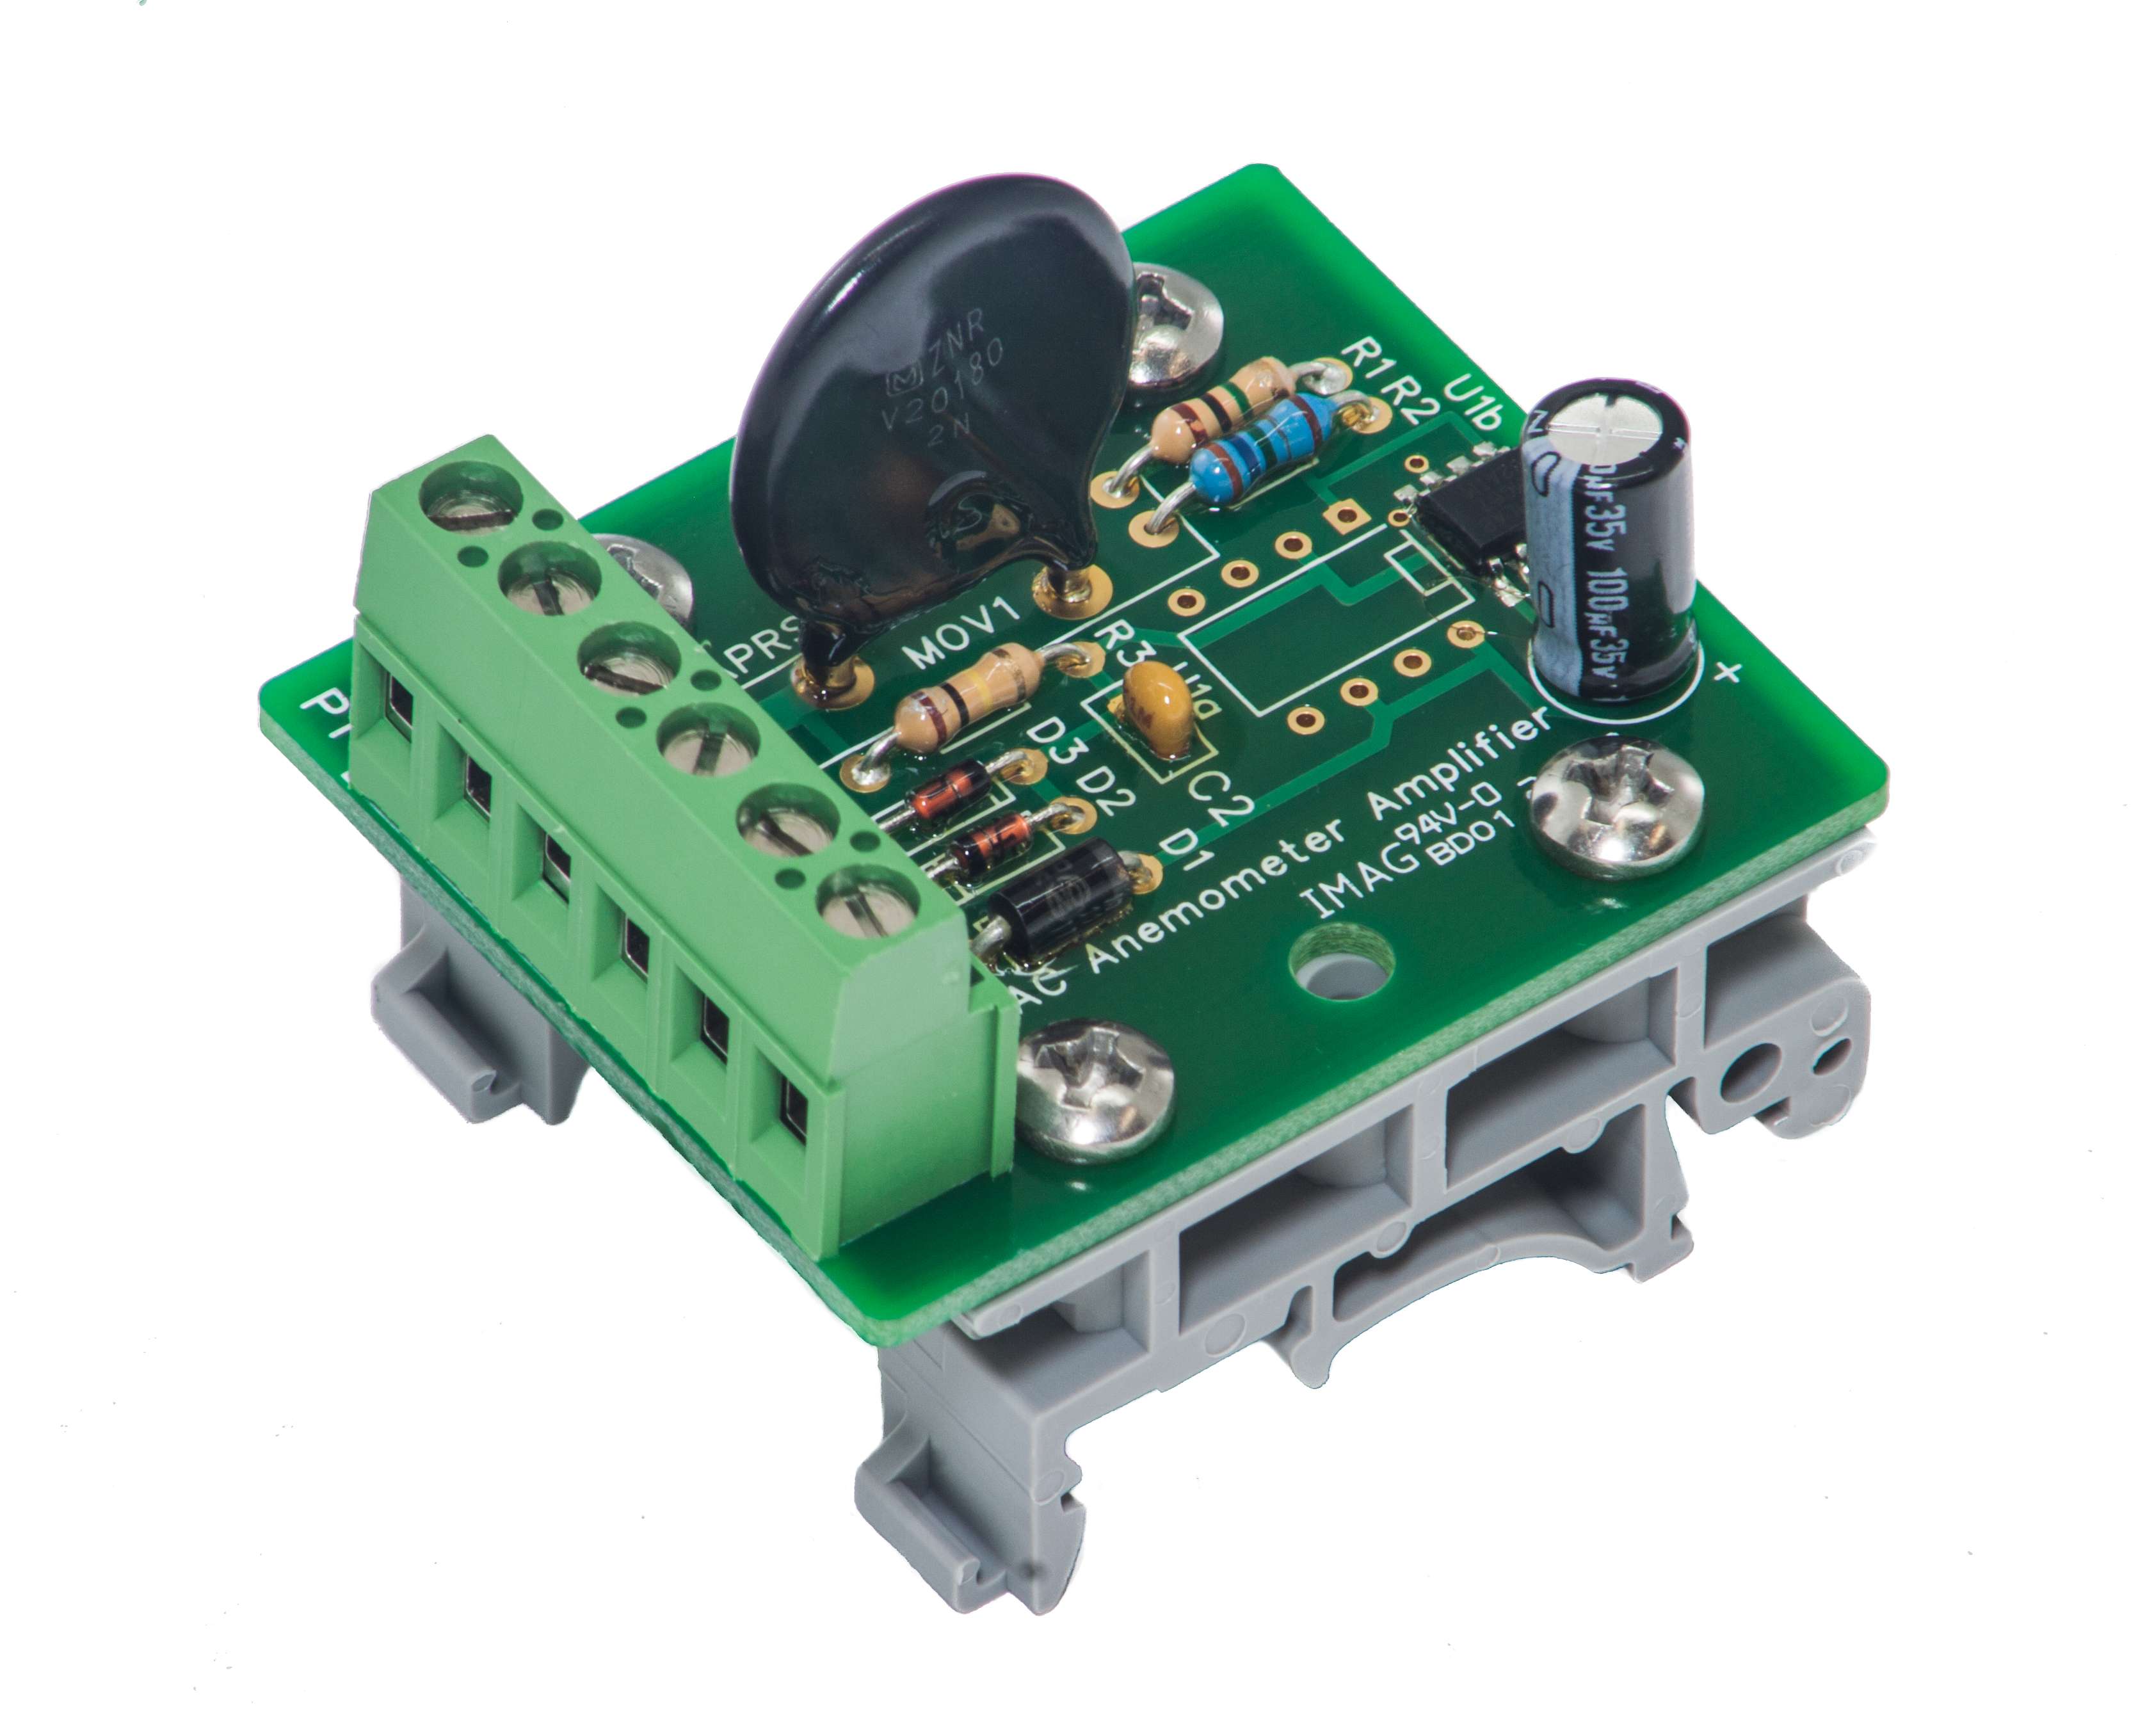 medium resolution of aprs6511 ac anemometer amplifier board view full size view slideshow